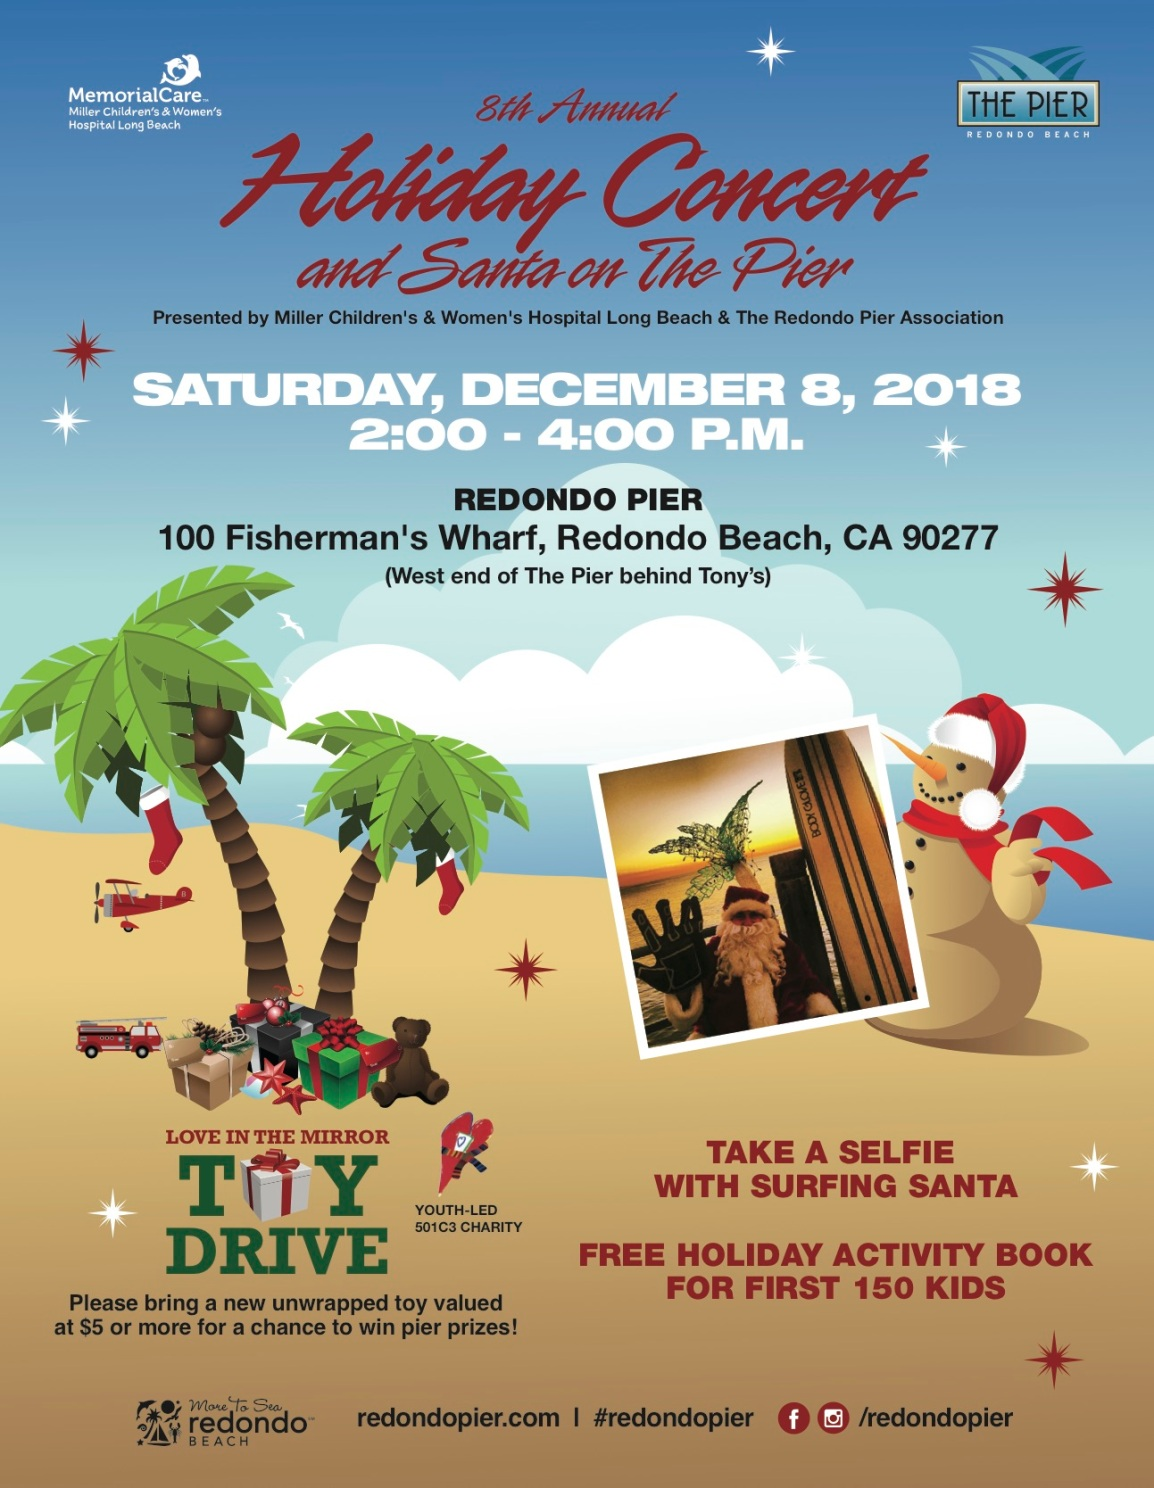 Holiday Concert and Santa on the Redondo Pier